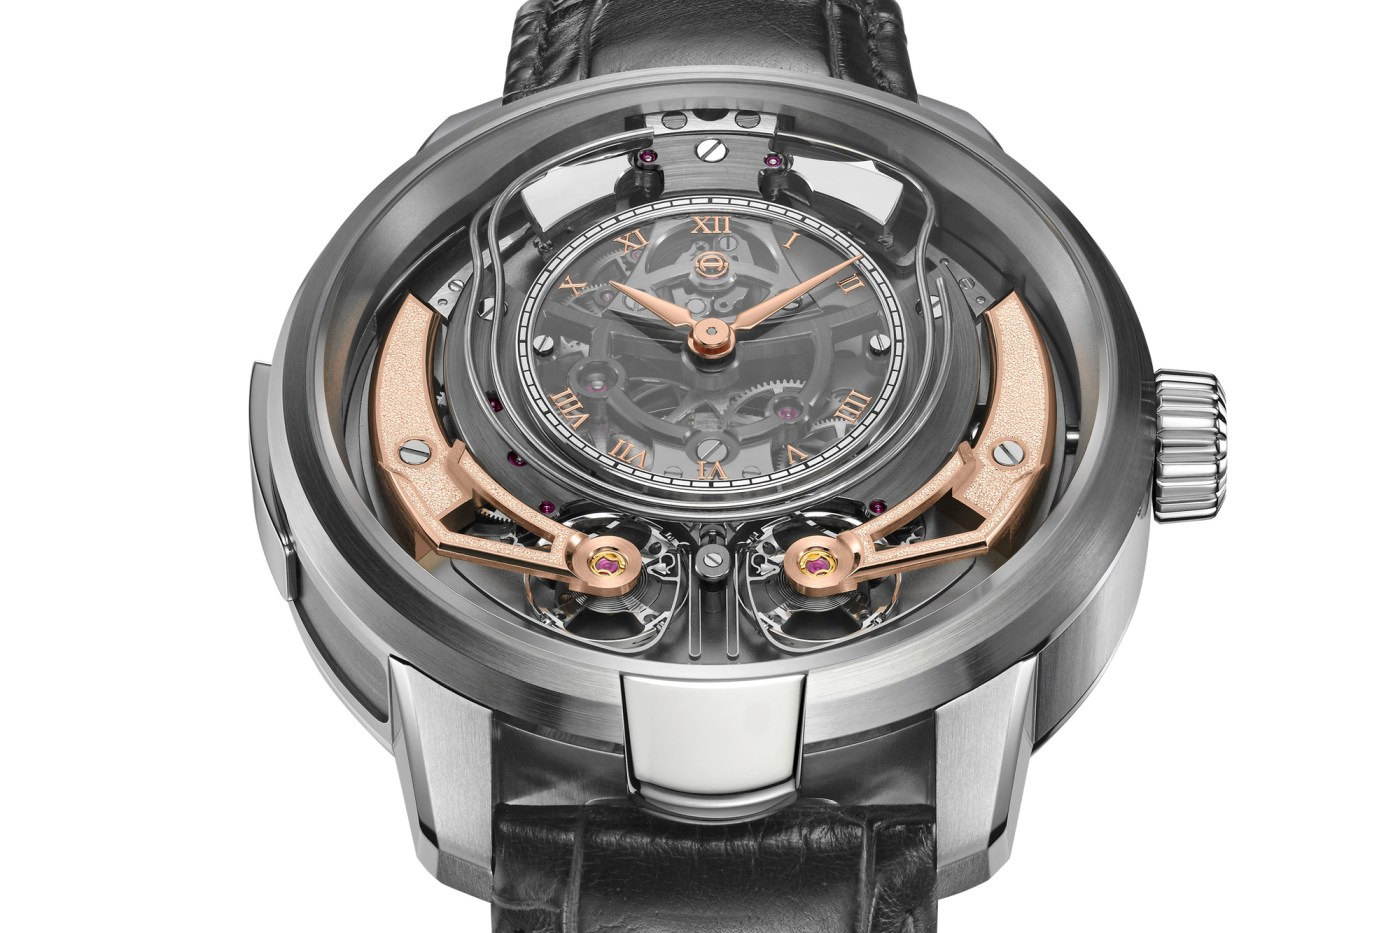 Minute Repeater Resonance